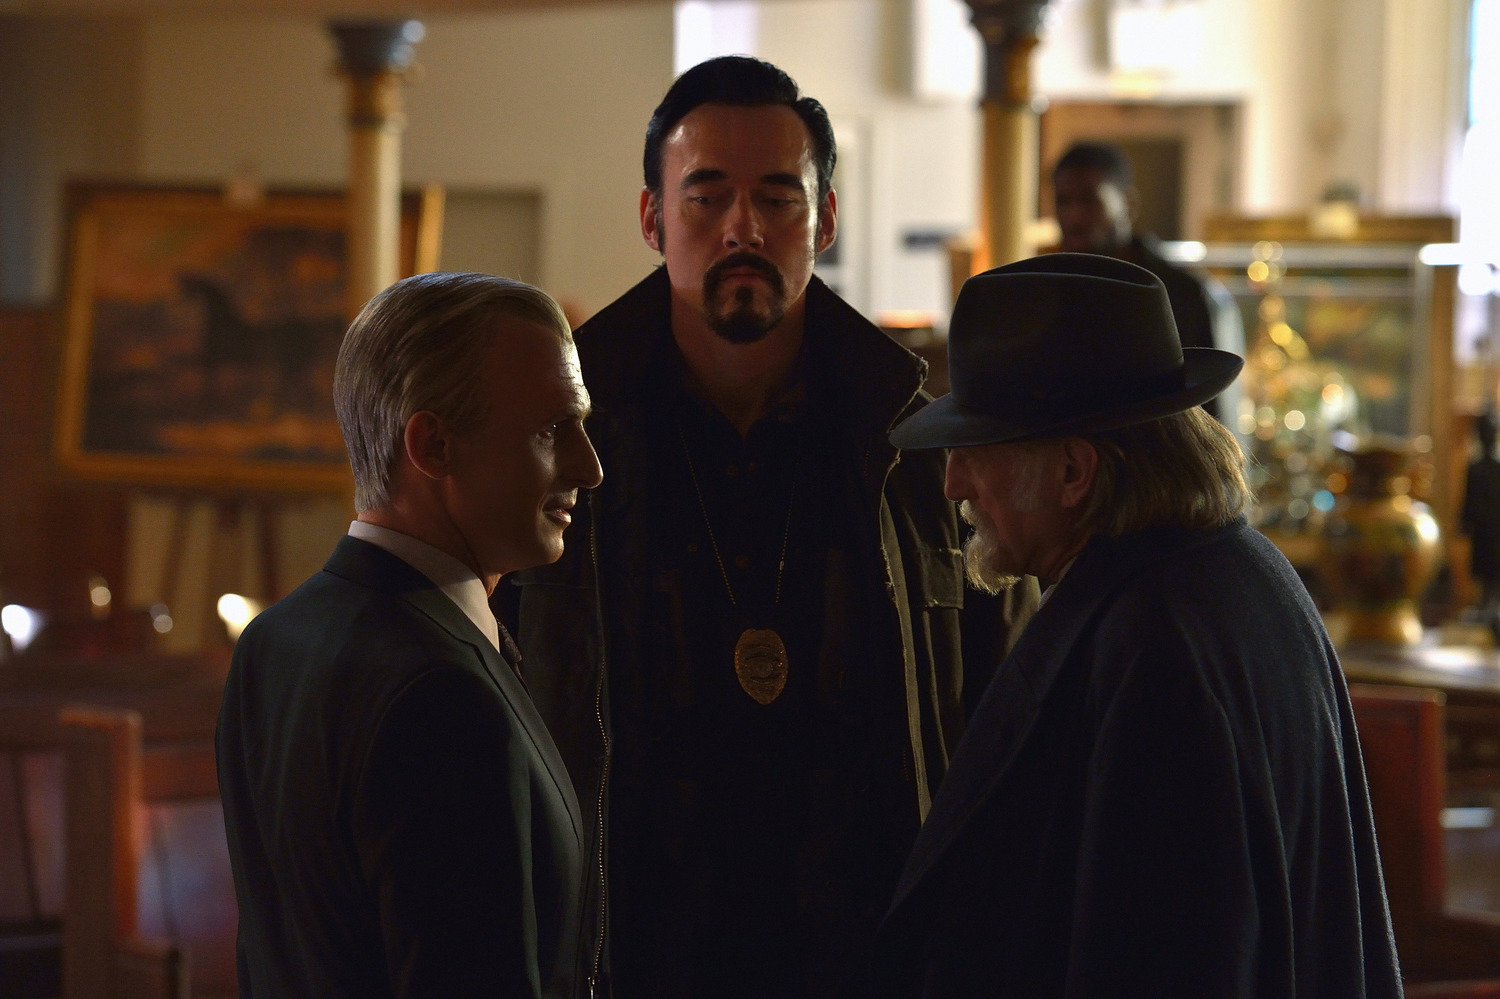 Episode 286: The Strain - S2E13 - Night Train